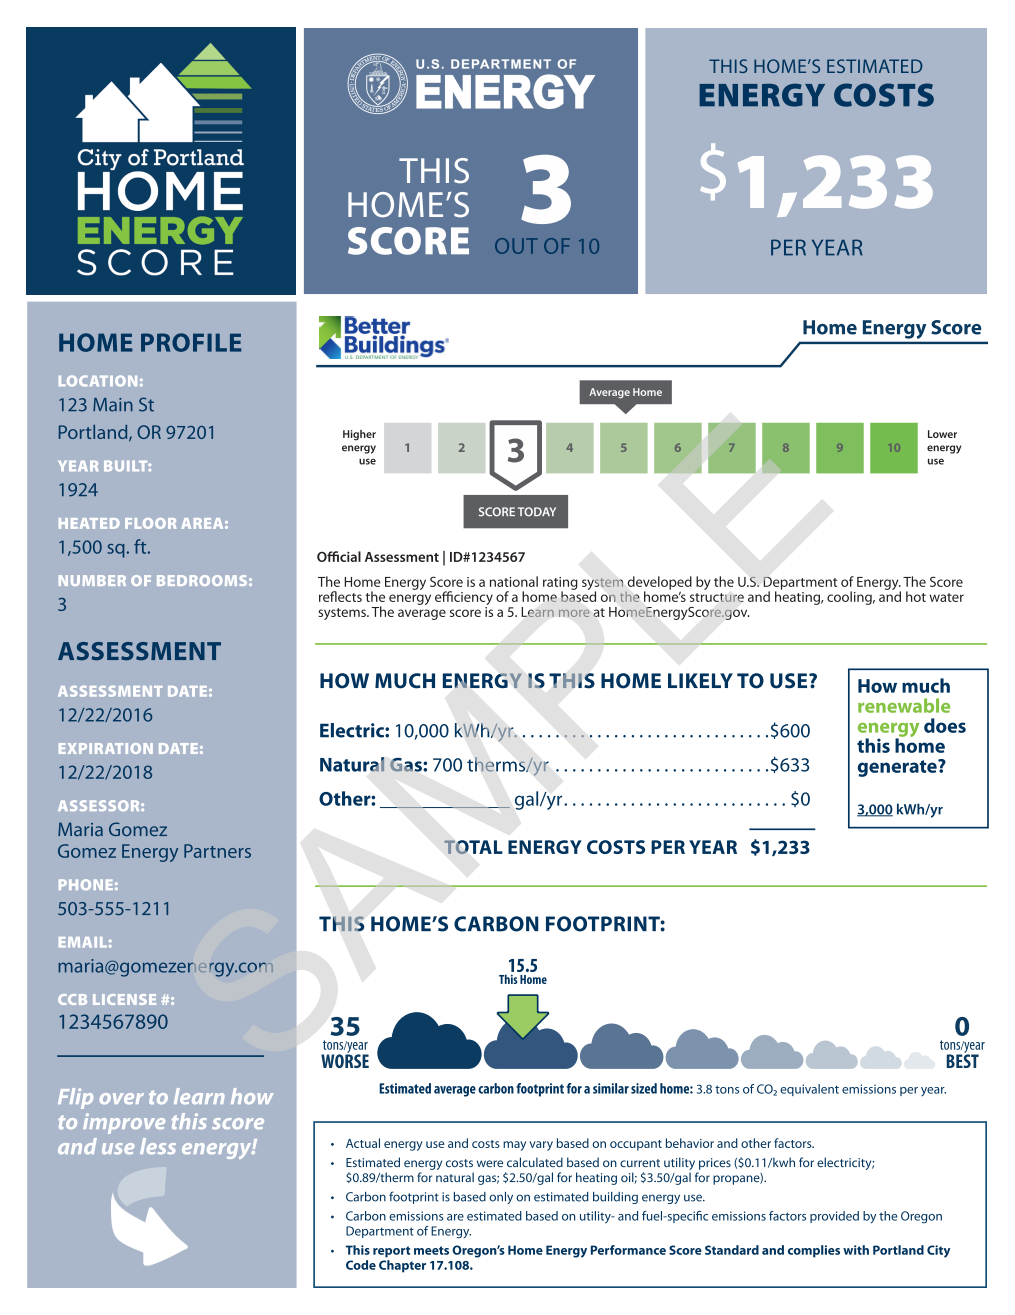 Front page of City of Portland Home Energy Score